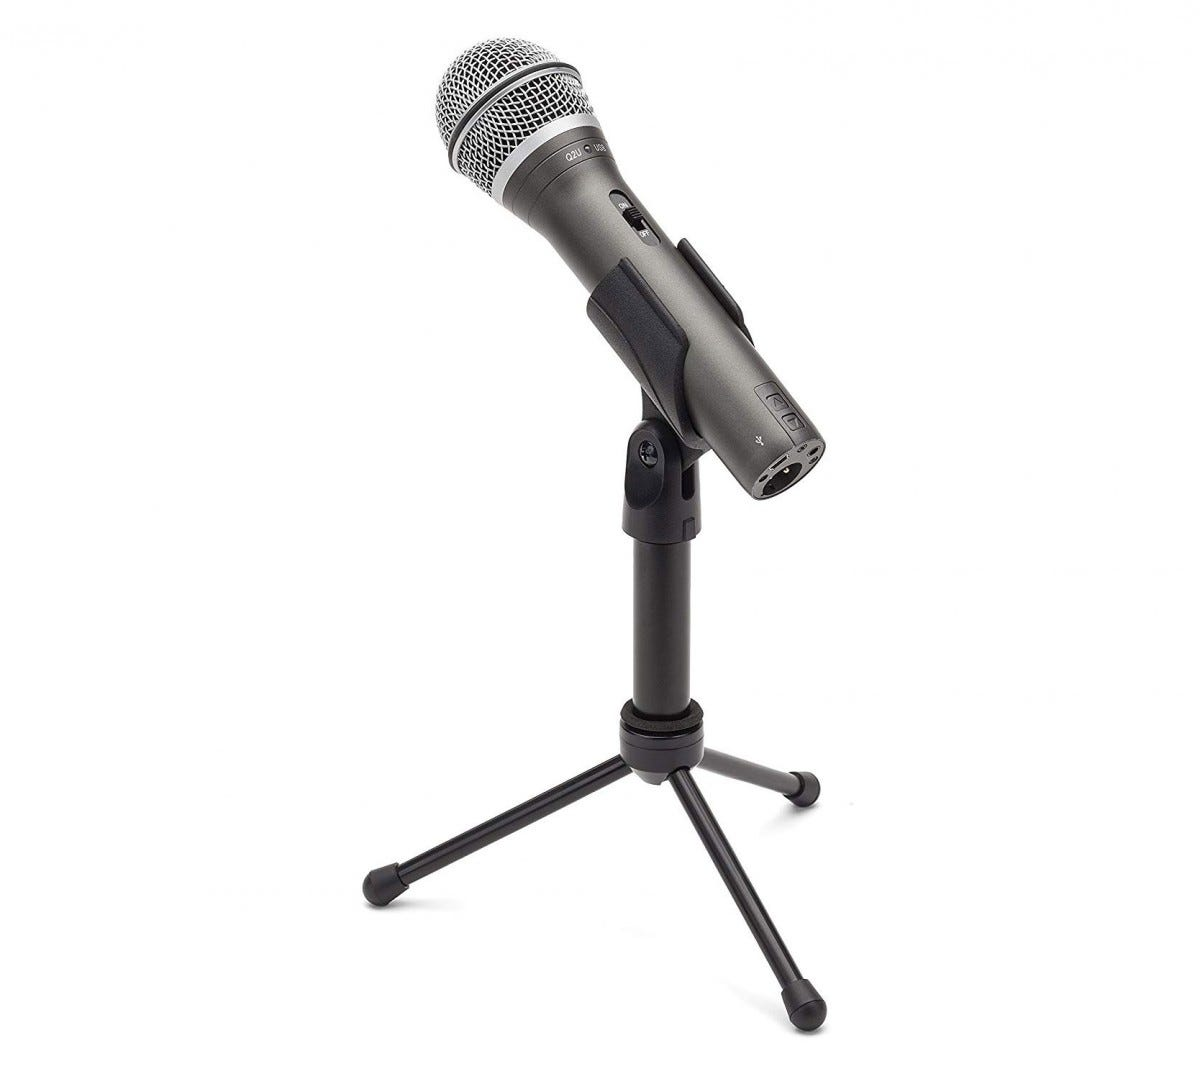 This Samson mic can use both USB and XLR cables.